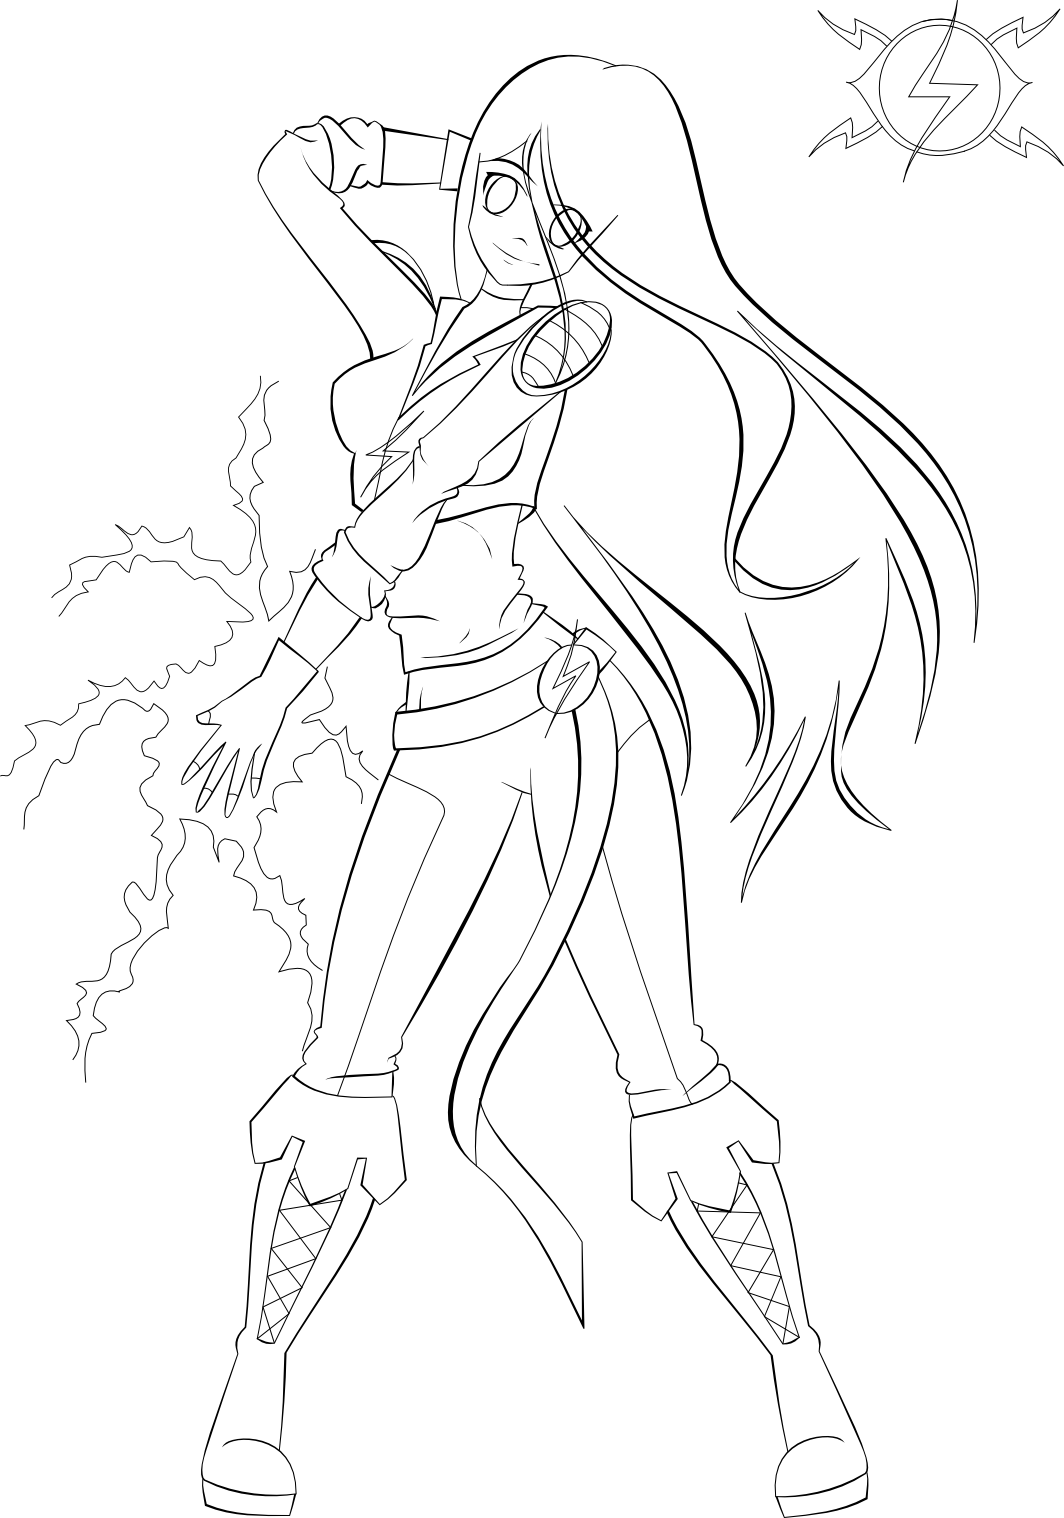 anime zeusteam coloring page by fagner1994 on deviantart